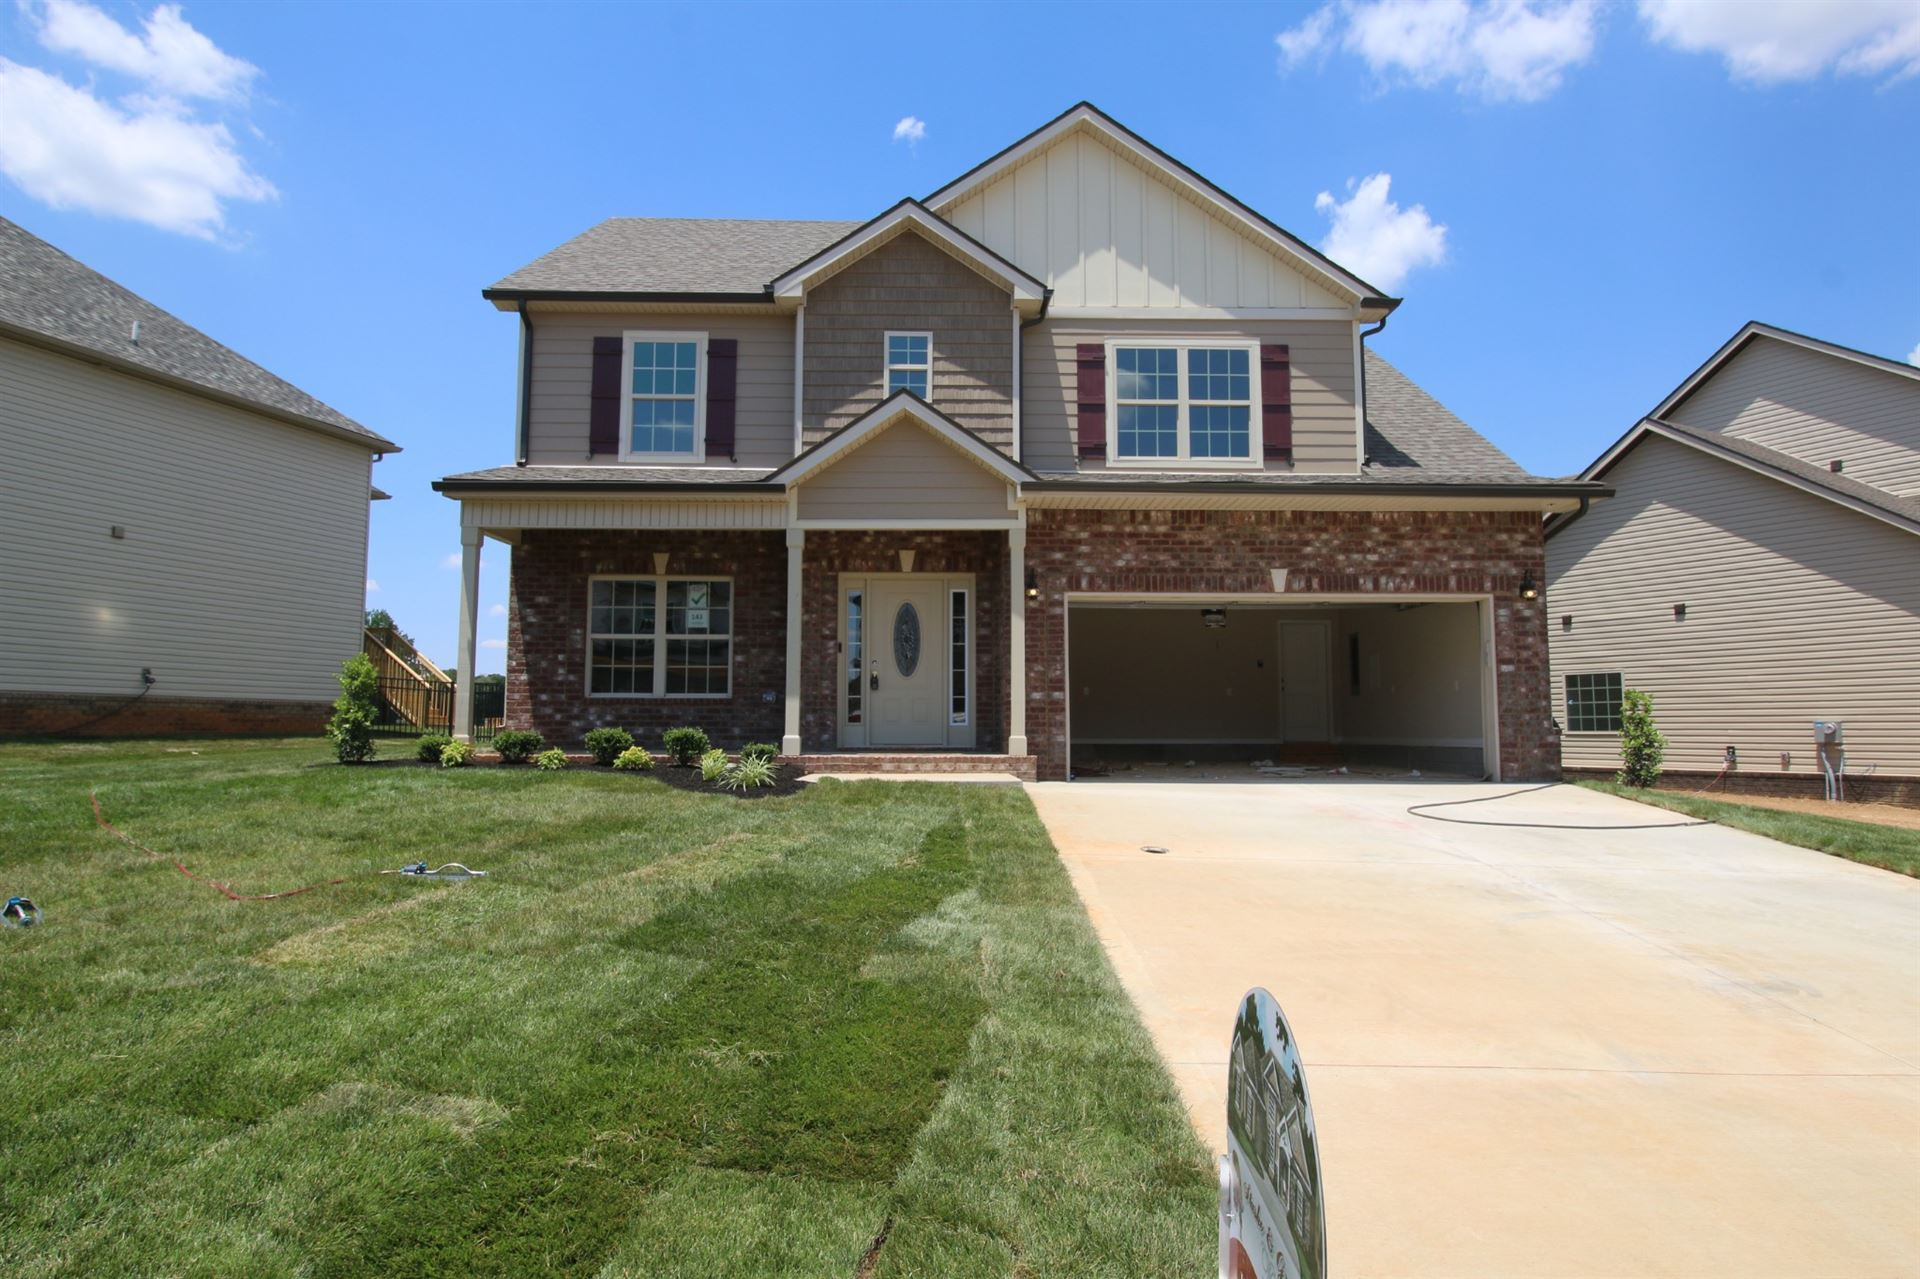 143 Charleston Oaks, Clarksville, TN 37042 - MLS#: 2220637